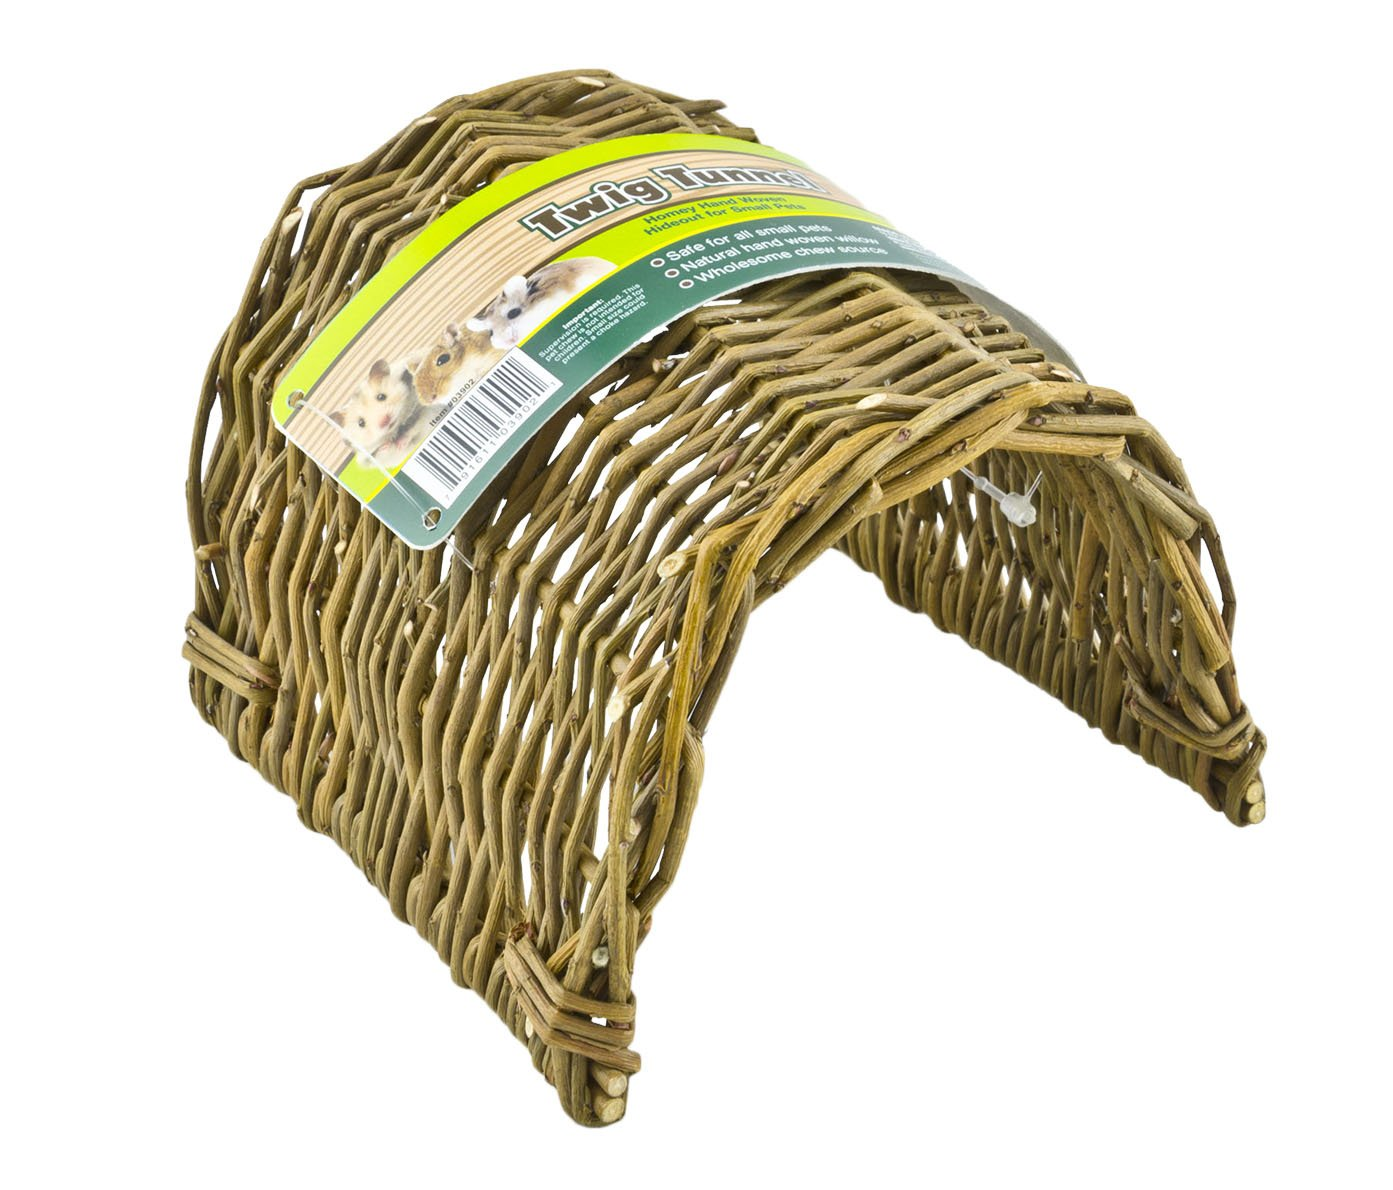 WARE MANUFACTURING Hand Woven Willow Twig Tunnel Small Pet Hideout, Large Ware Manufacturing Inc. 3904